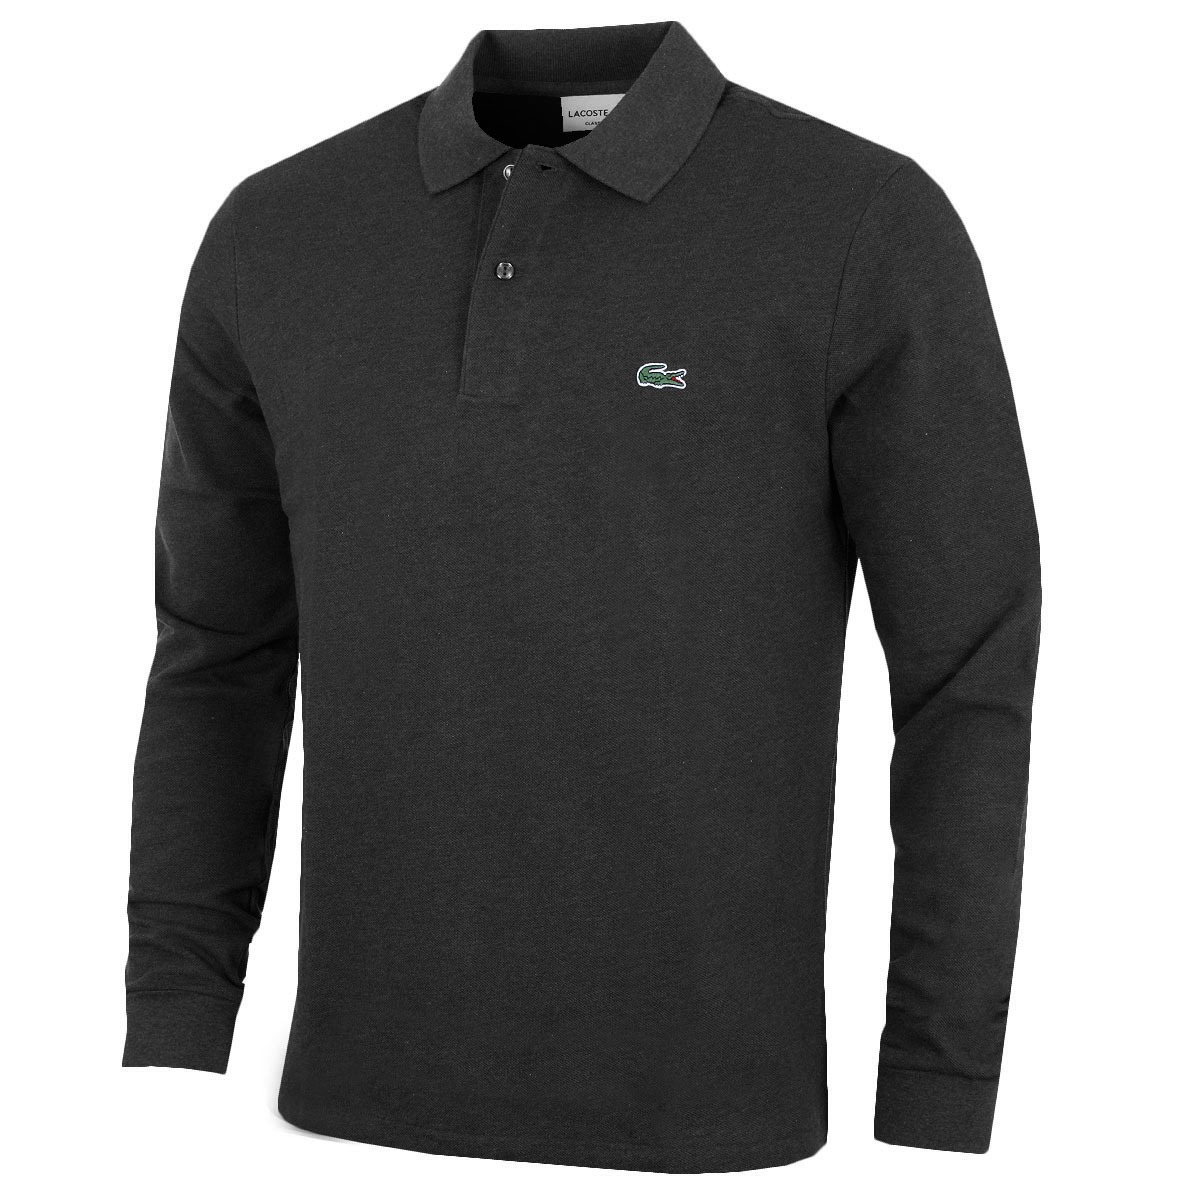 Lacoste mens l1313 marl long sleeve polo shirt 29 for Men s lightweight long sleeve polo shirts